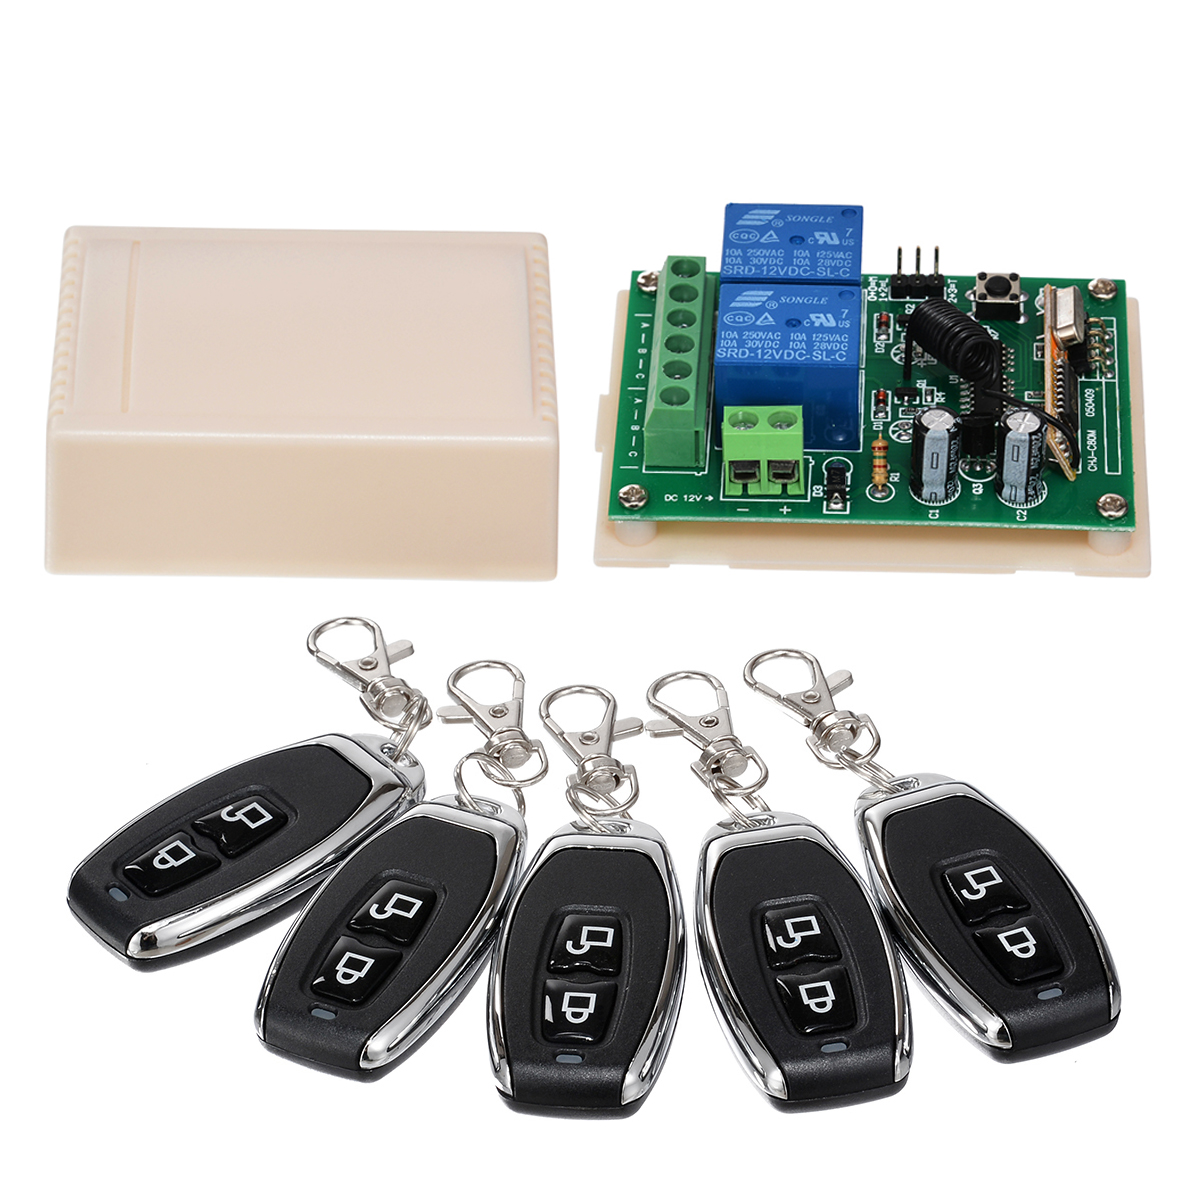 Stable 2 CH Remote Control Switch Relay Normally Open Closed Wireless Transmitter + Receiver For Garage Door Window Mayitr